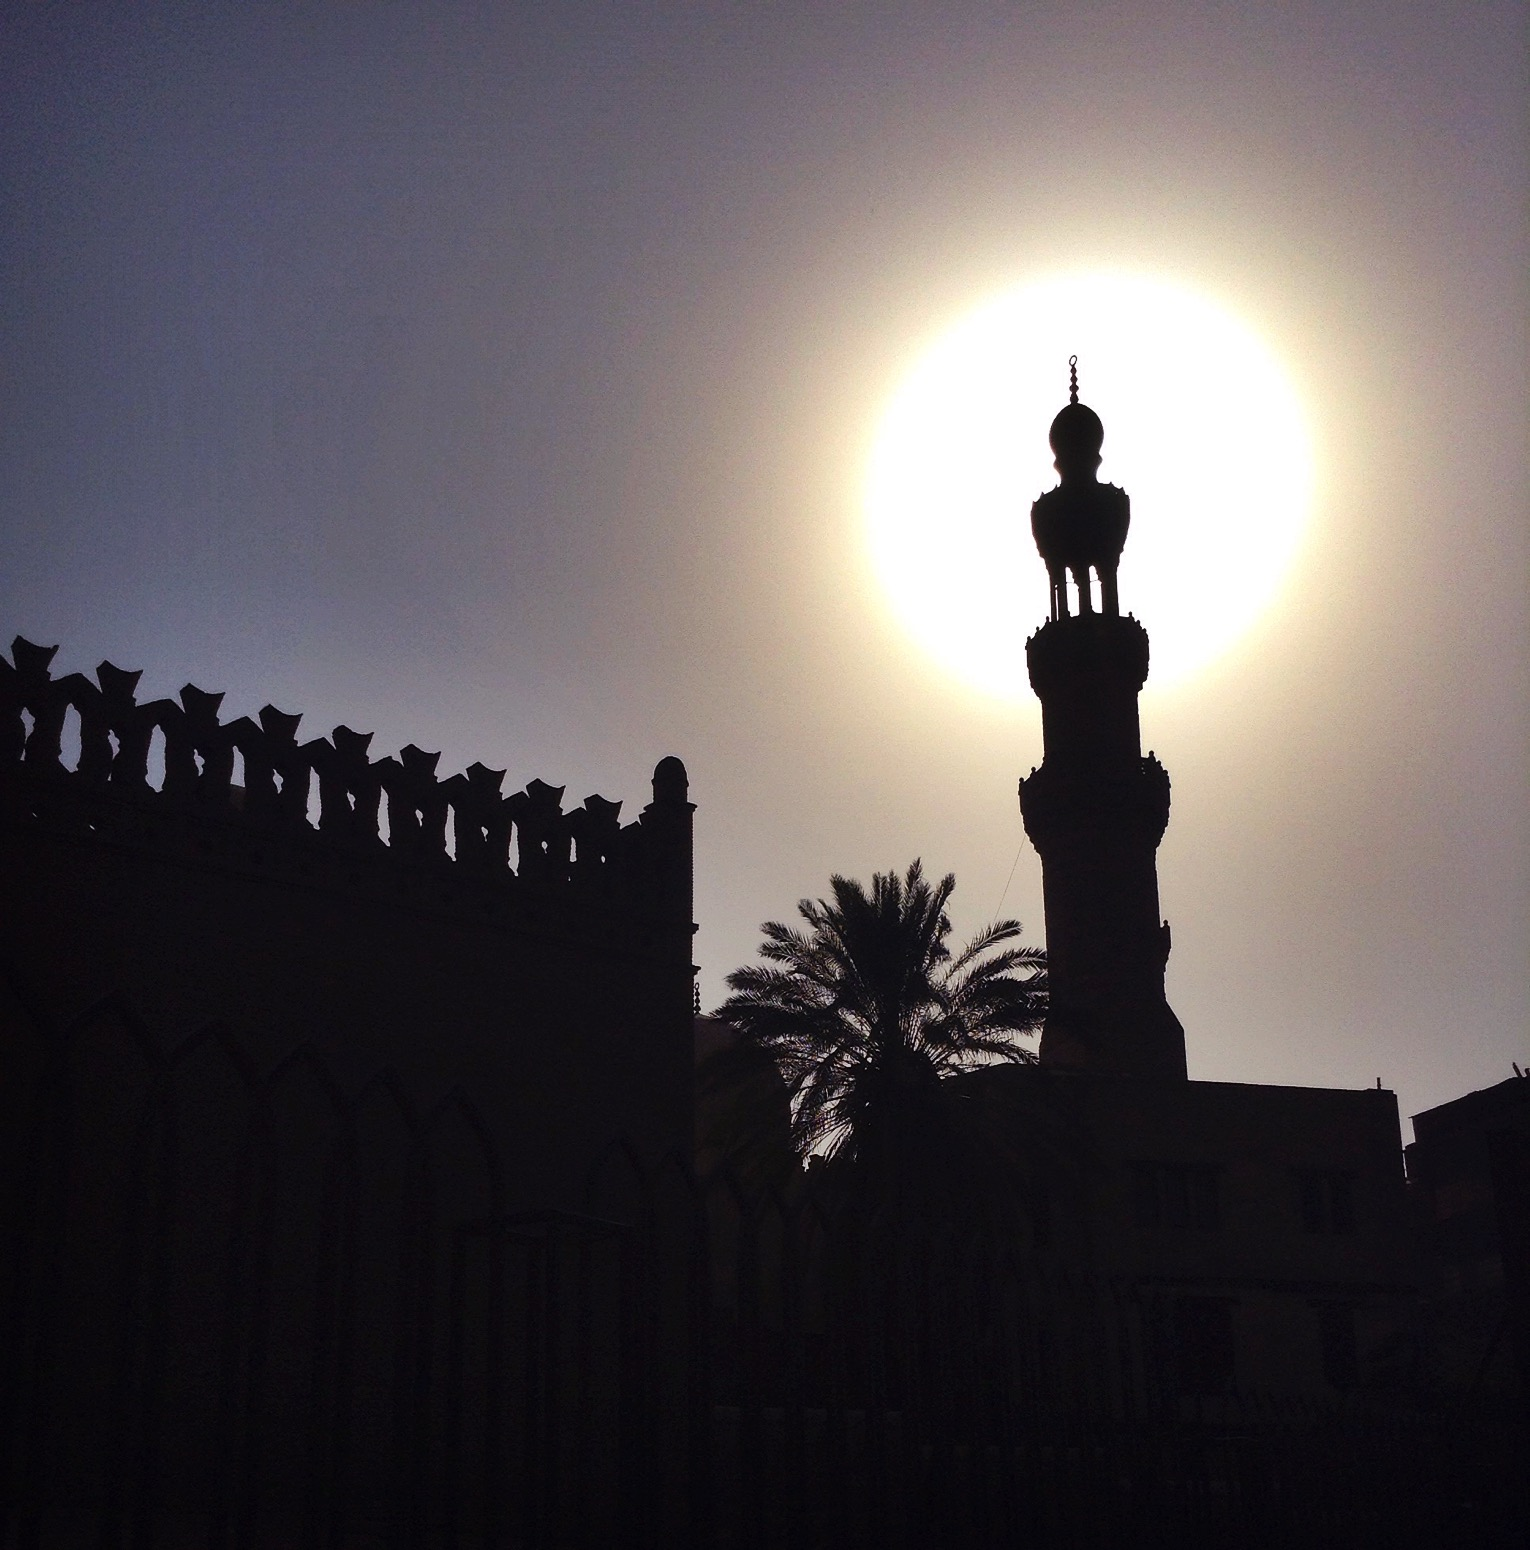 A minaret of a mosque silhouetted with the sun directly behind it